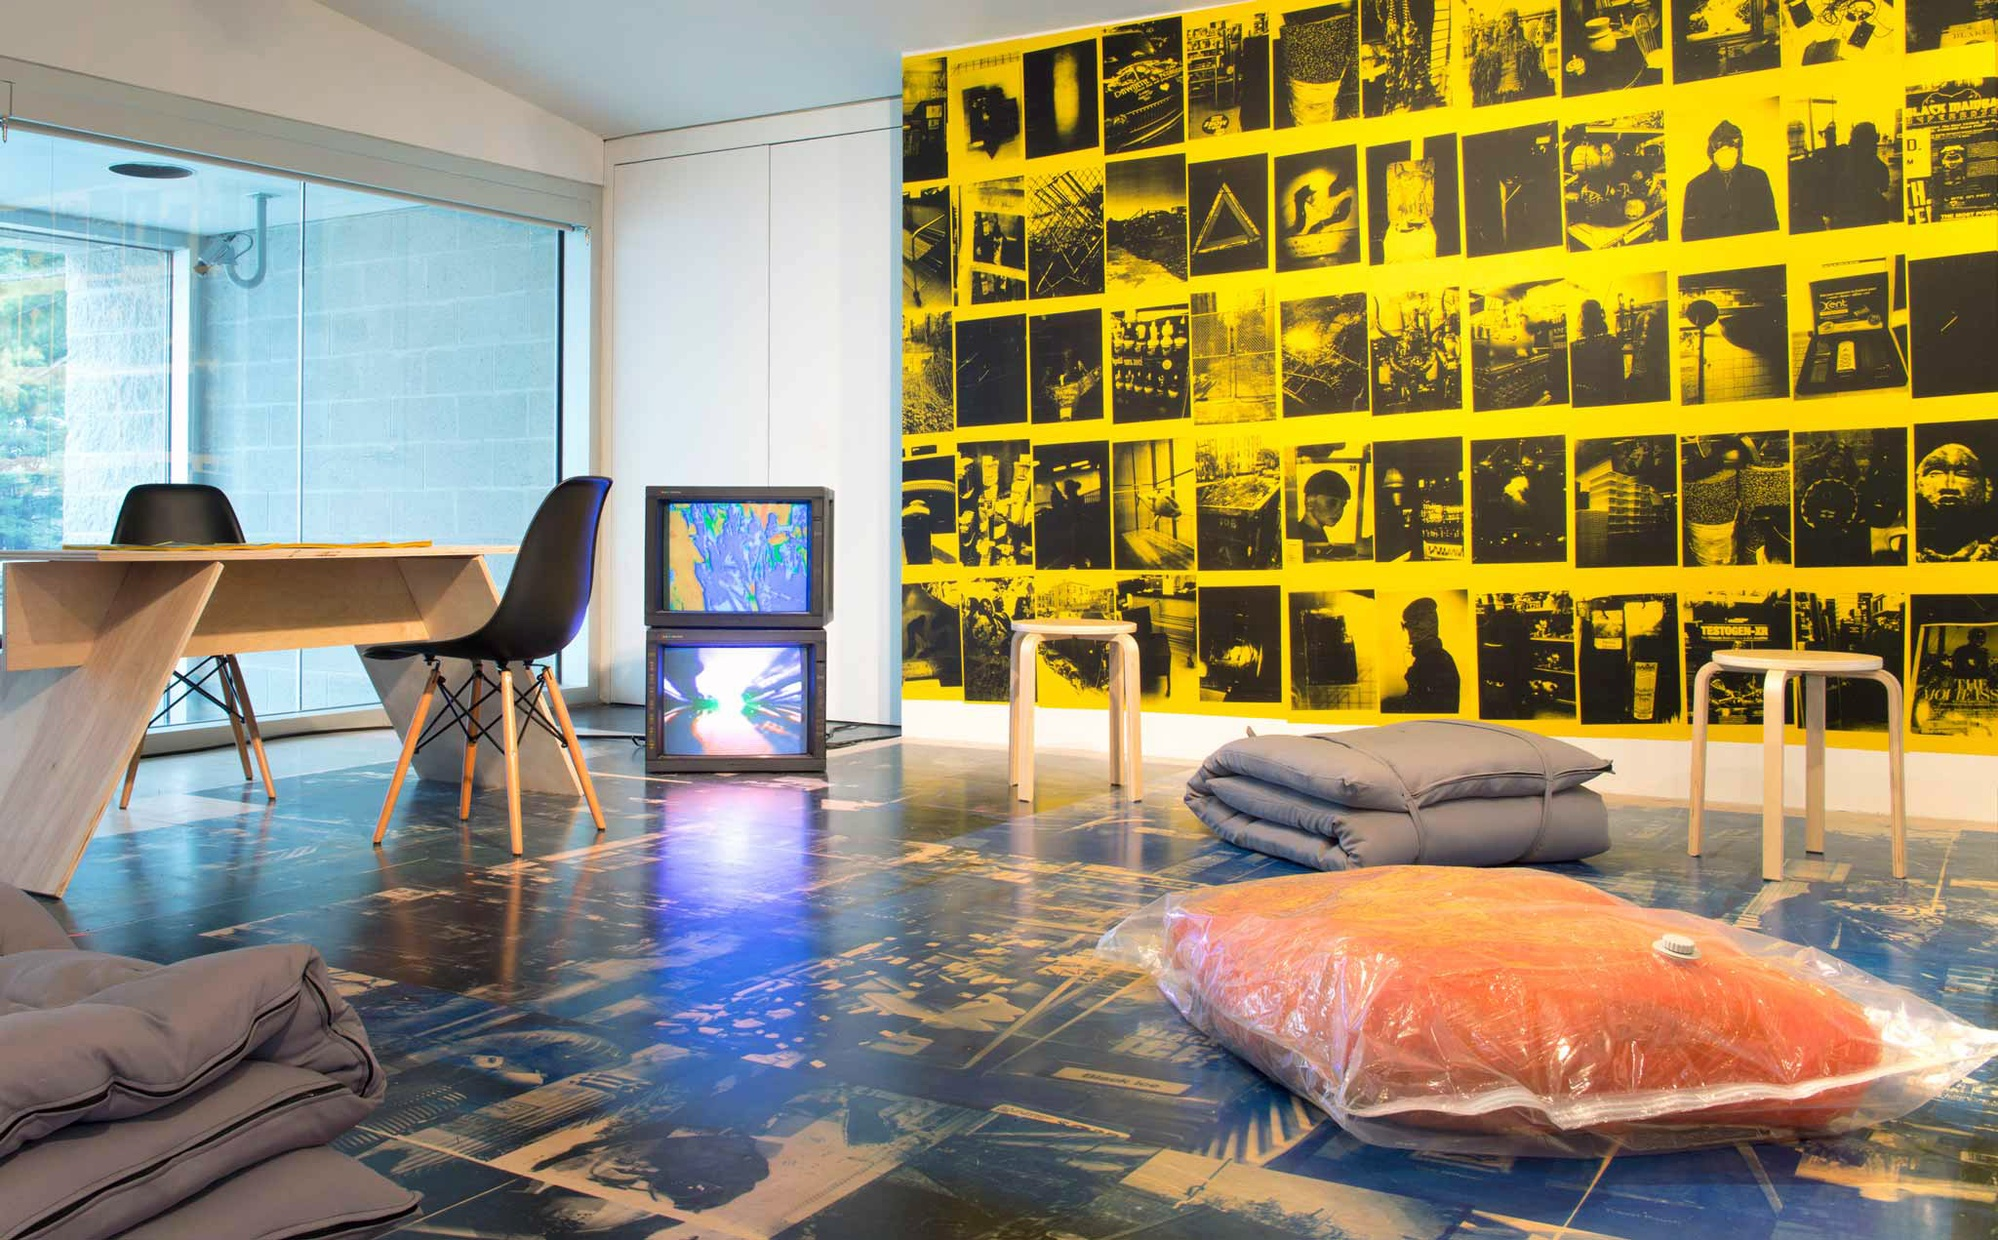 Two TV monitors and various types of seating rest on a wooden floor printed with dark images. Adjacent to the TV monitors, a wall is covered with yellow pamphlets printed with different urban scenes printed in black ink.